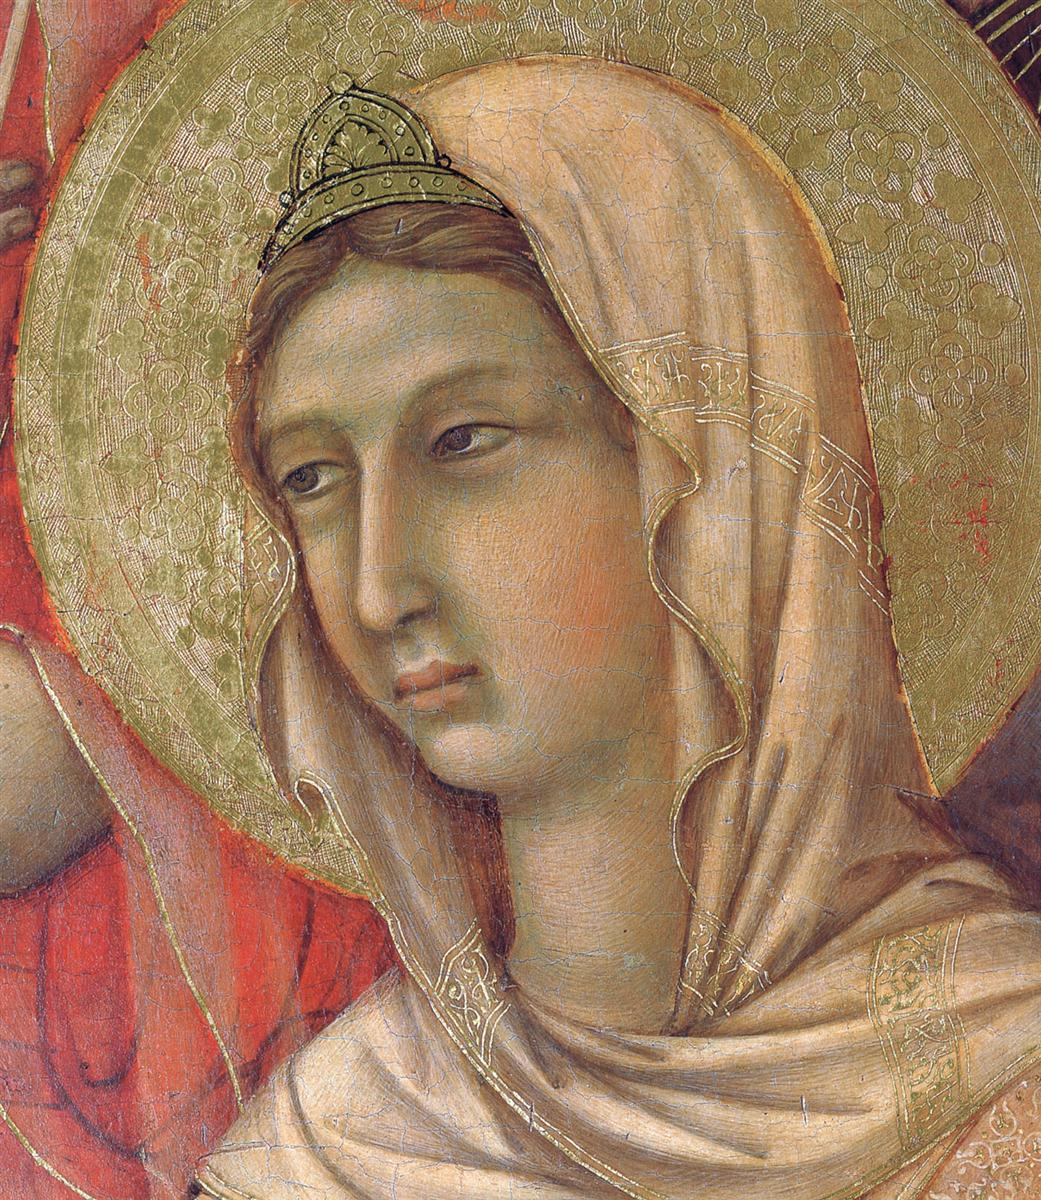 madonna-and-child-on-a-throne-front-side-fragment-1311-12.jpg!HD.jpg